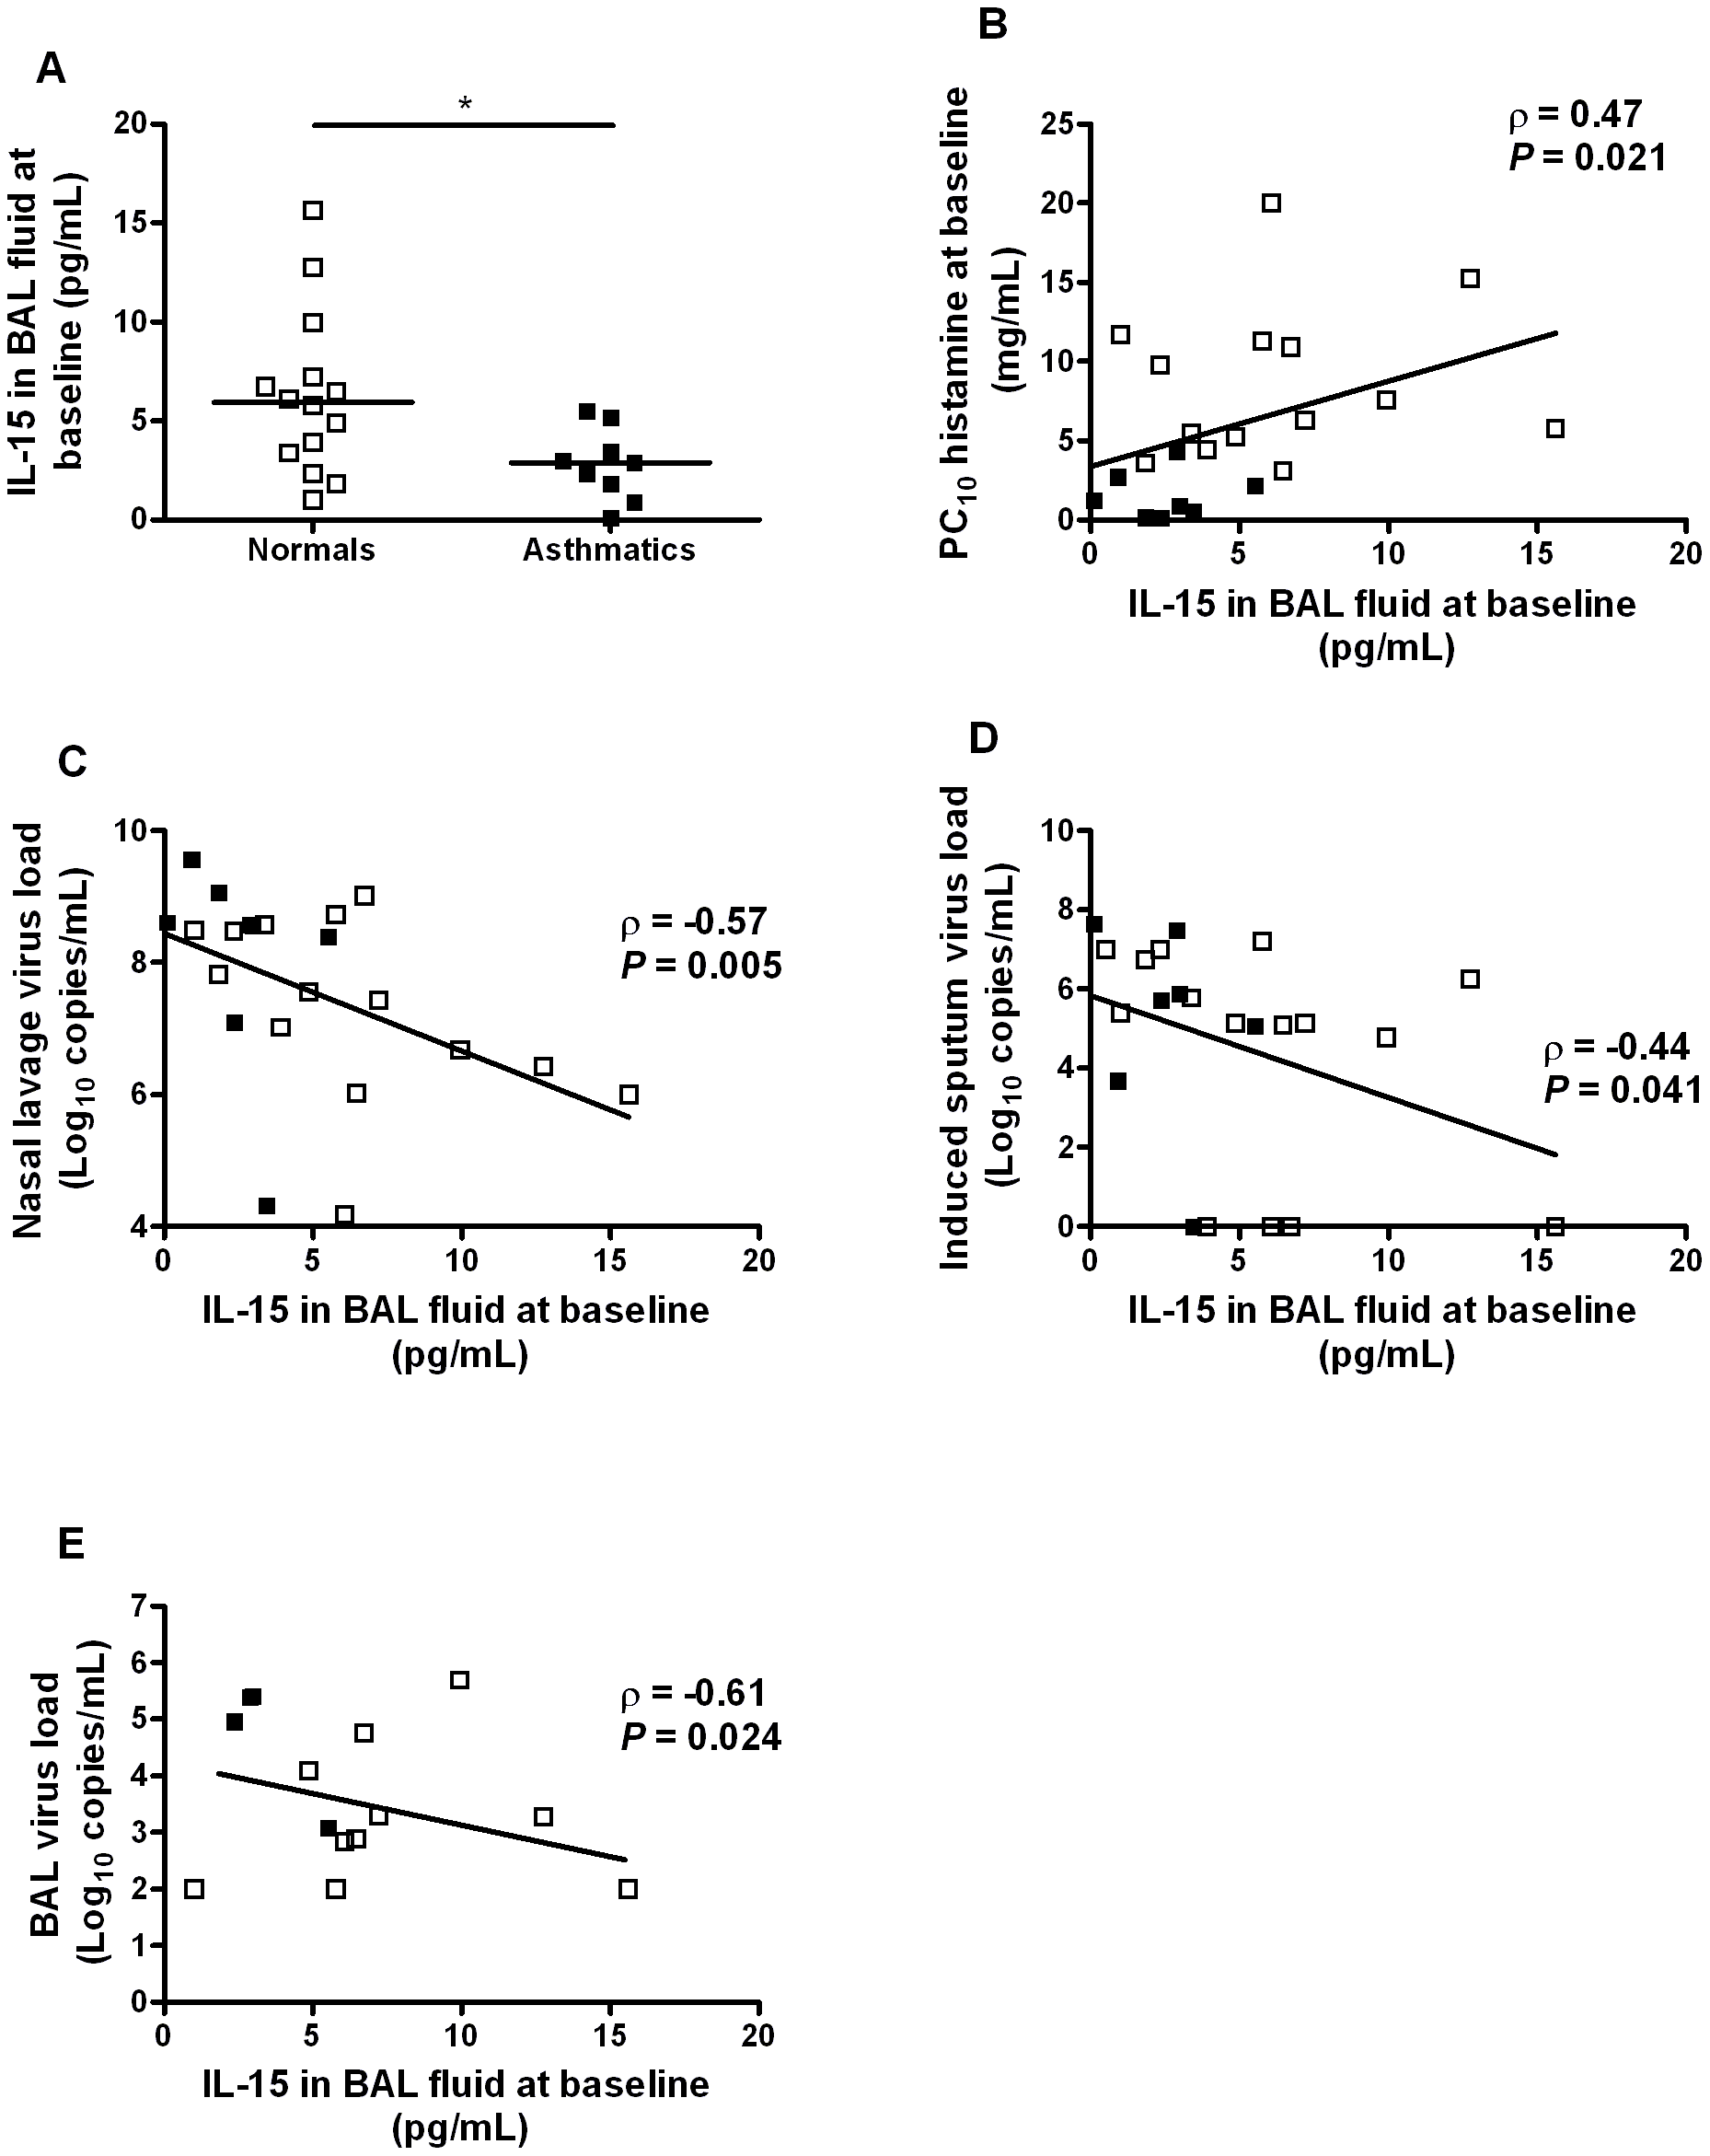 IL-15 levels in BAL fluid in asthma are inversely related to airway hyperresponsiveness and virus load on subsequent <i>in vivo</i> rhinovirus infection.